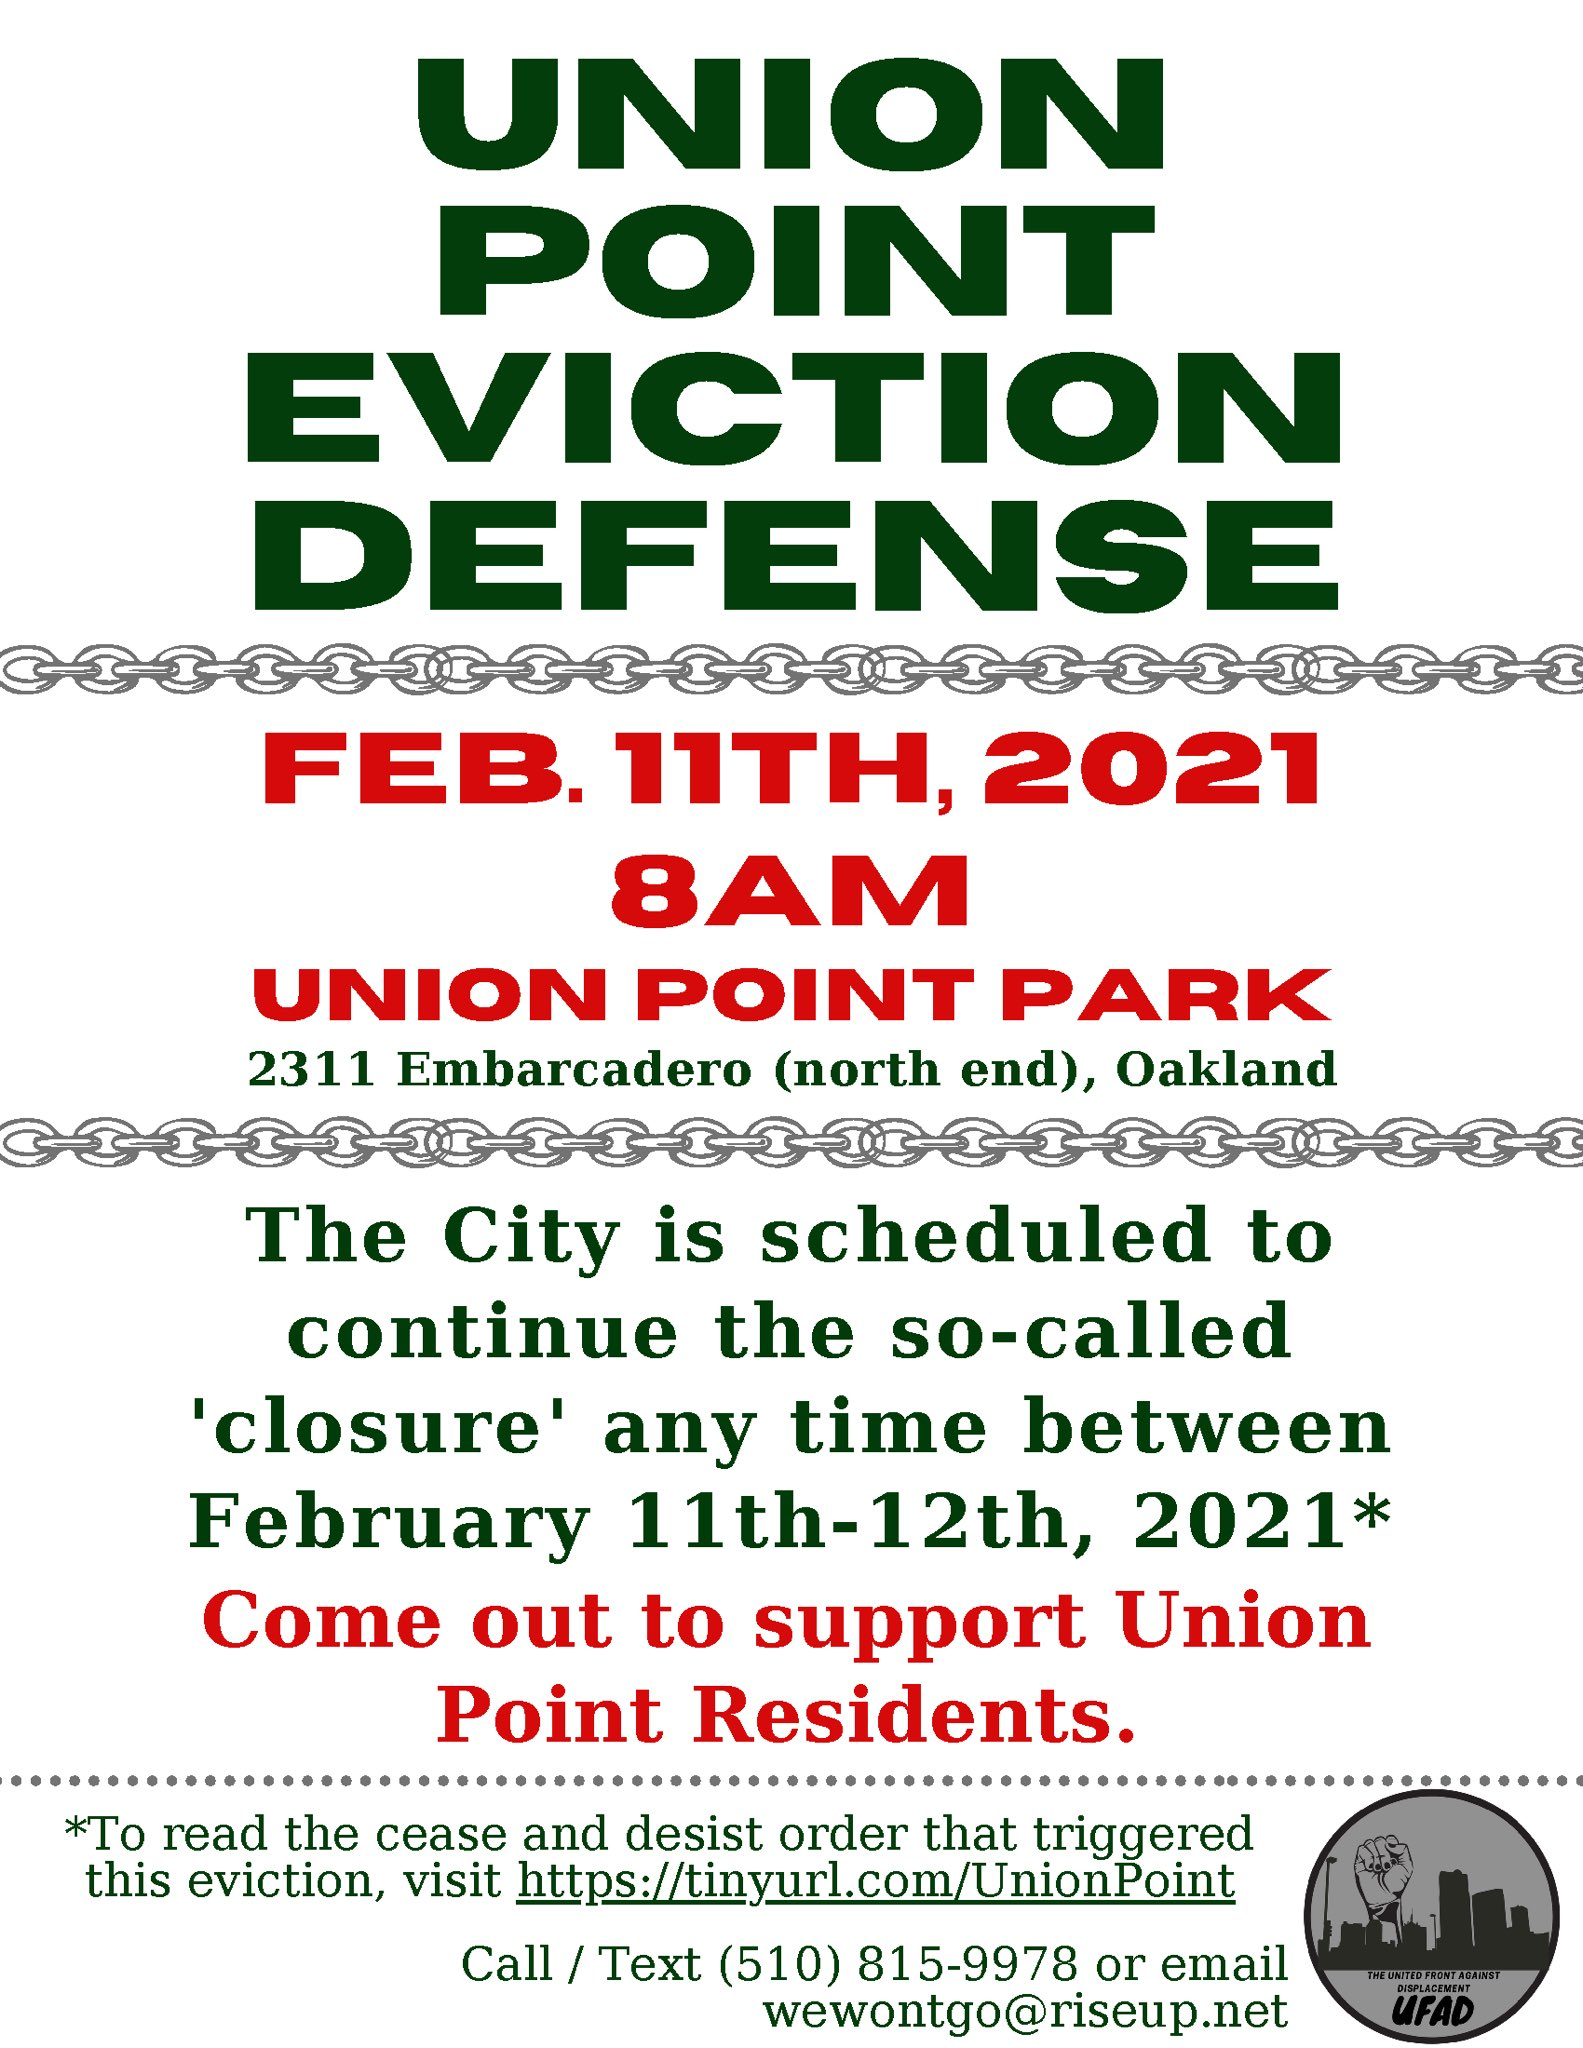 Union Point Eviction Defense